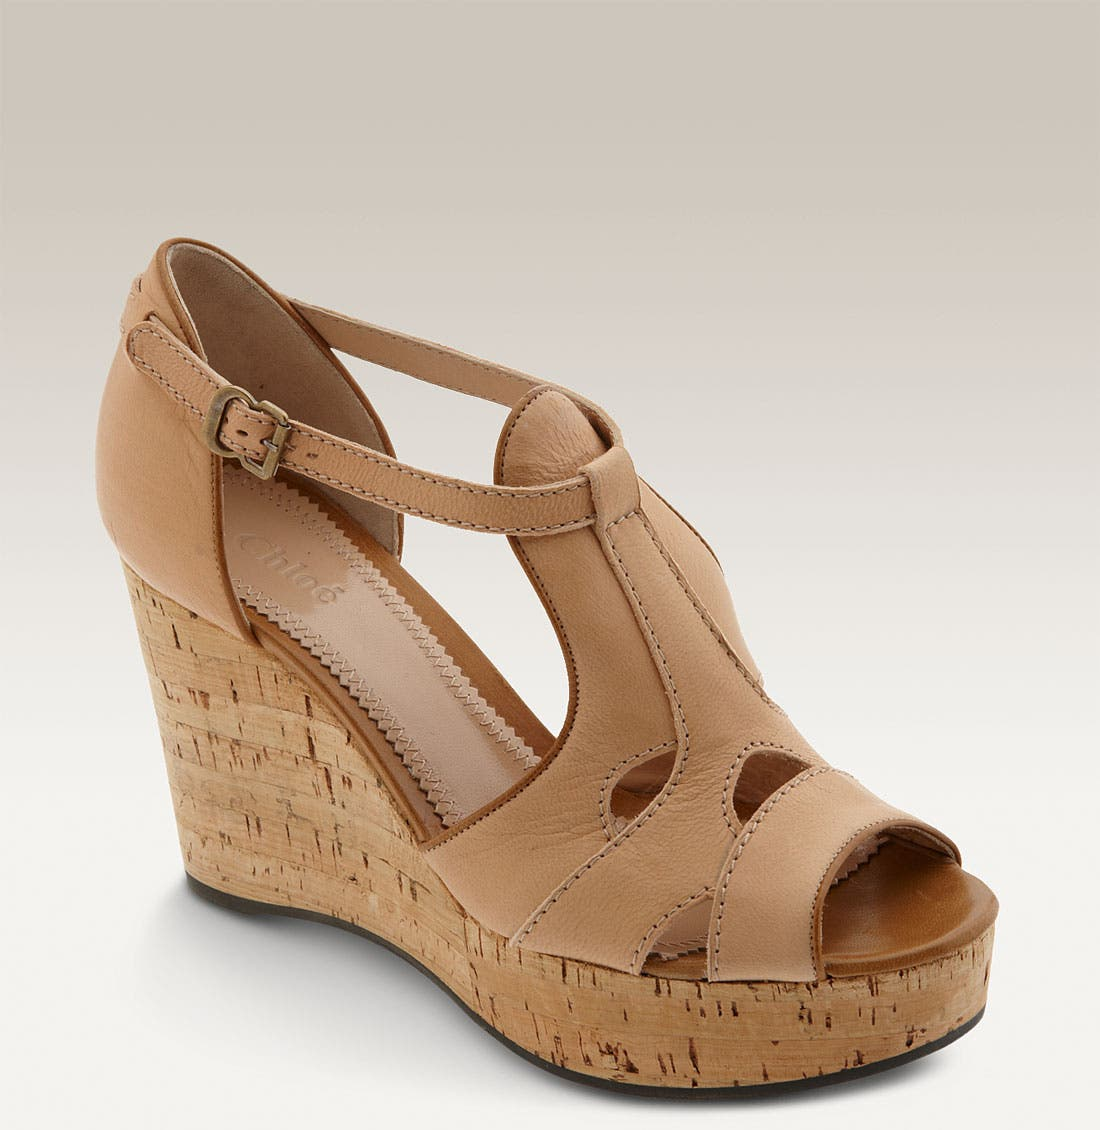 Alternate Image 1 Selected - Chloé Cutout T-Strap Cork Wedge